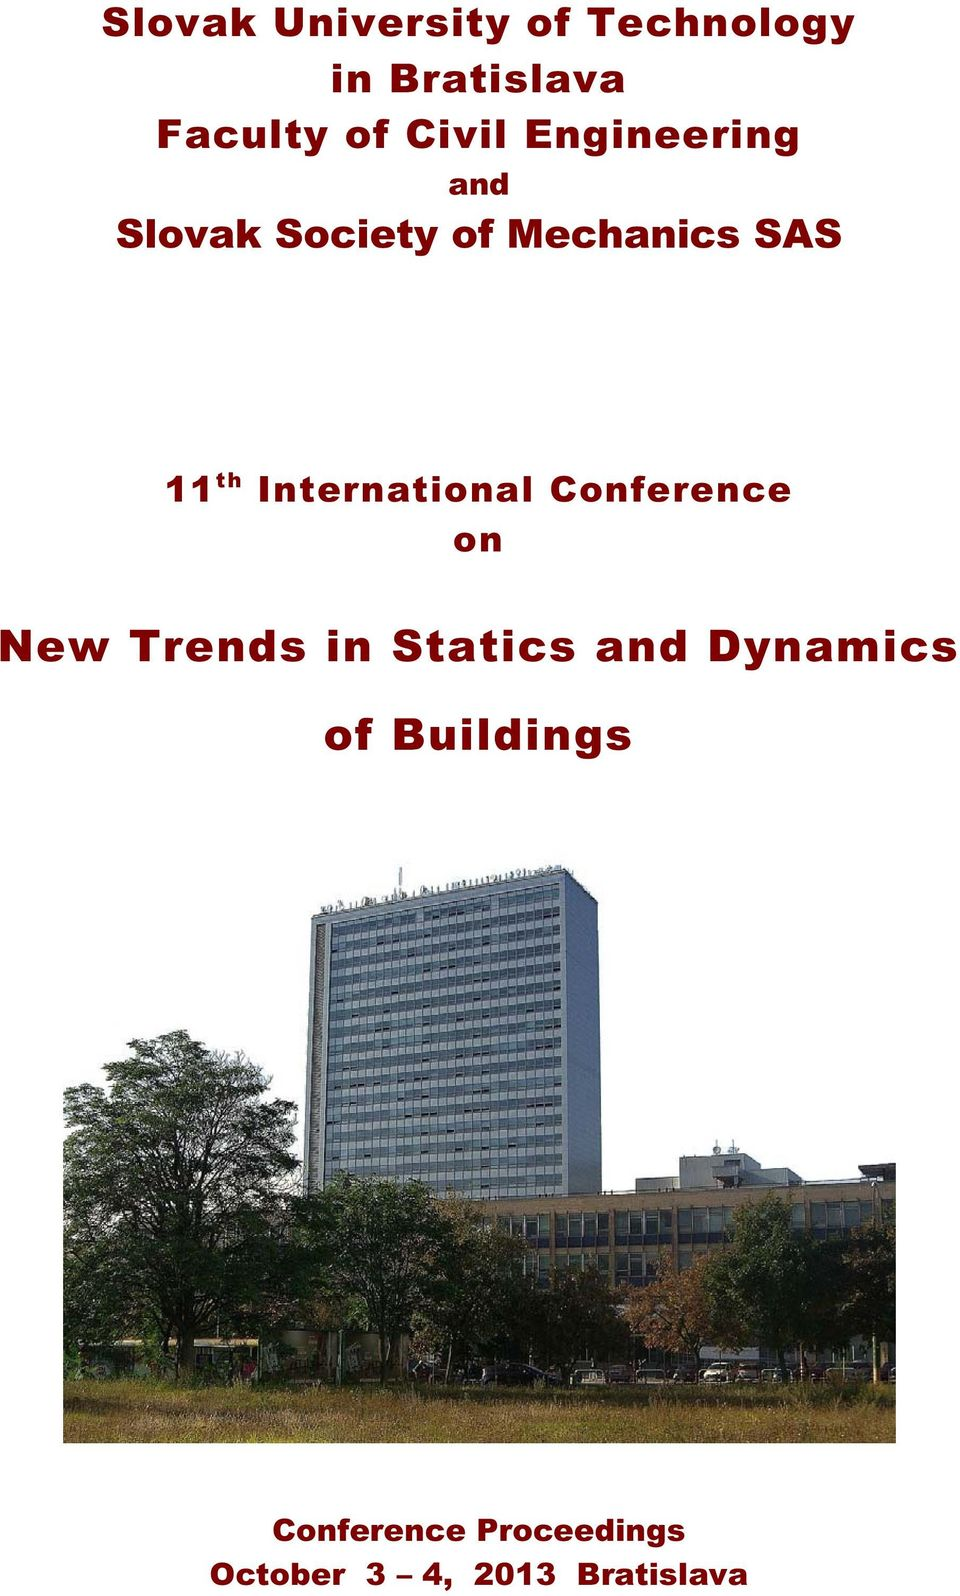 International Conference on New Trends in Statics and